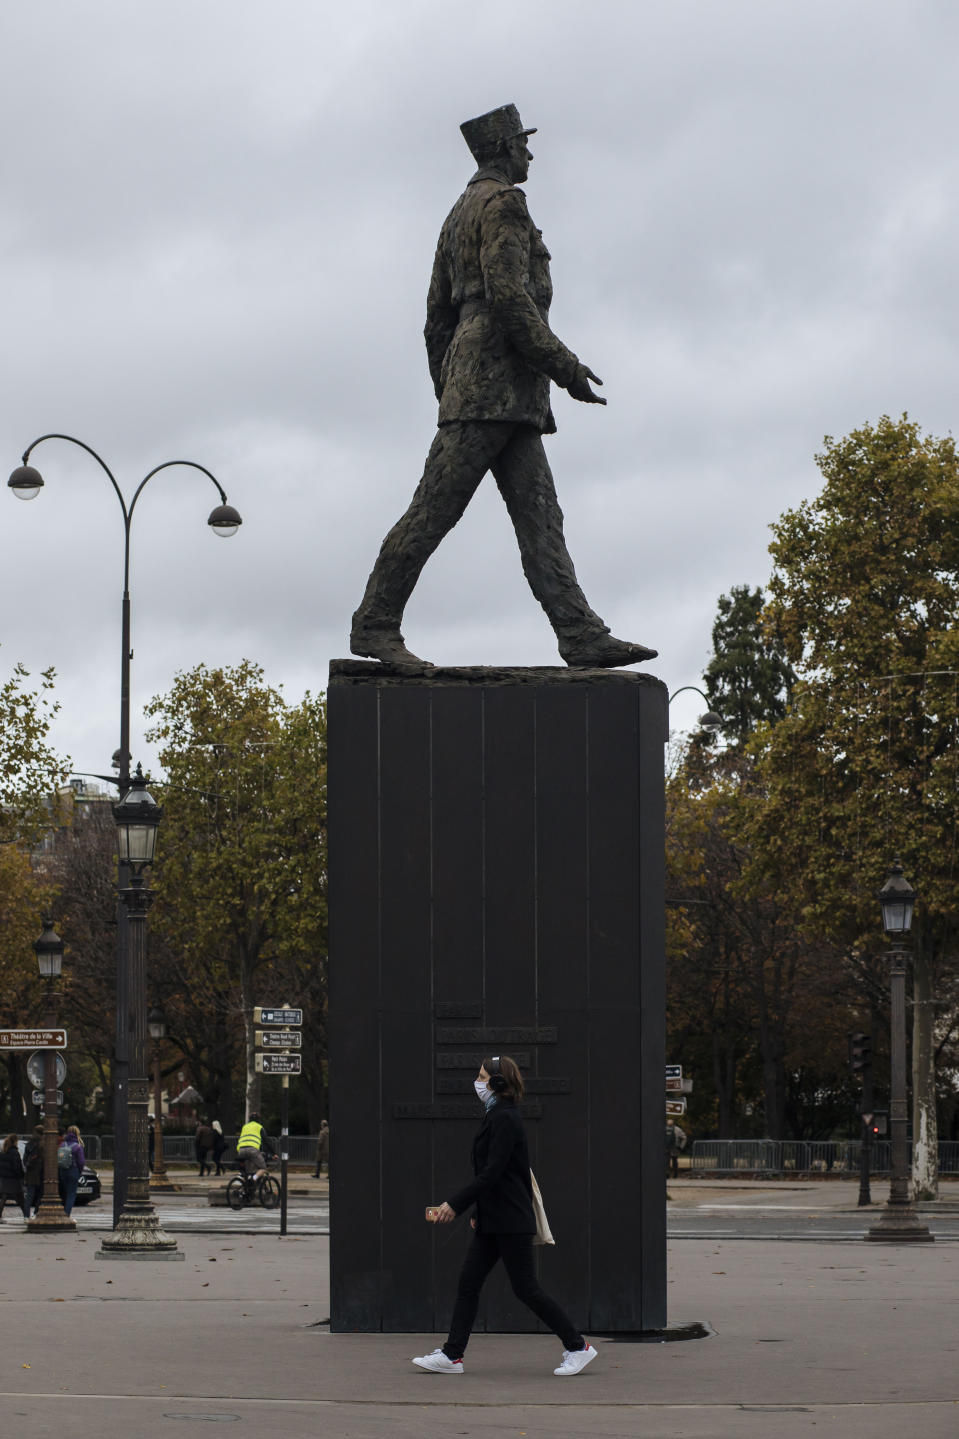 A woman wearing a mask walks by a General de Gaulle statue, on the Champs Elysees avenue in Paris, Sunday Oct.25, 2020. A curfew intended to curb the spiraling spread of the coronavirus, has been imposed in many regions of France including Paris and its suburbs. (AP Photo/Lewis Joly)